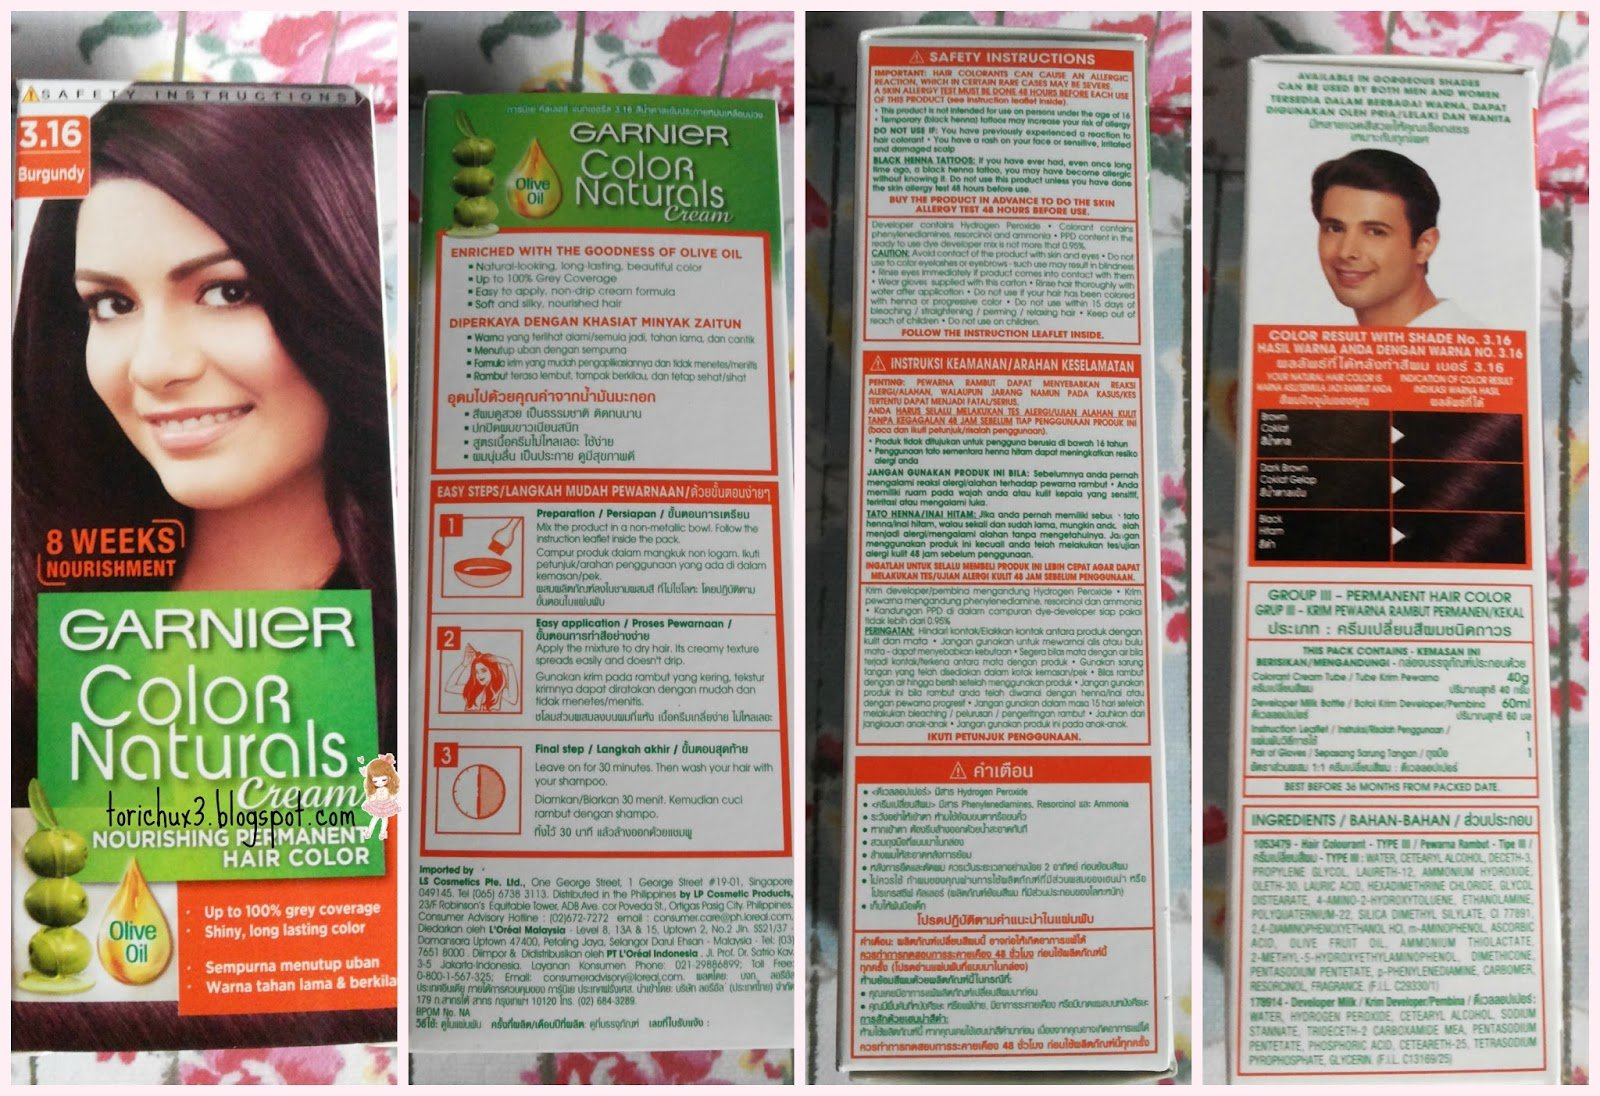 The Best Tori Chu Review Garnier Color Naturals Cream 3 16 Burgundy Pictures